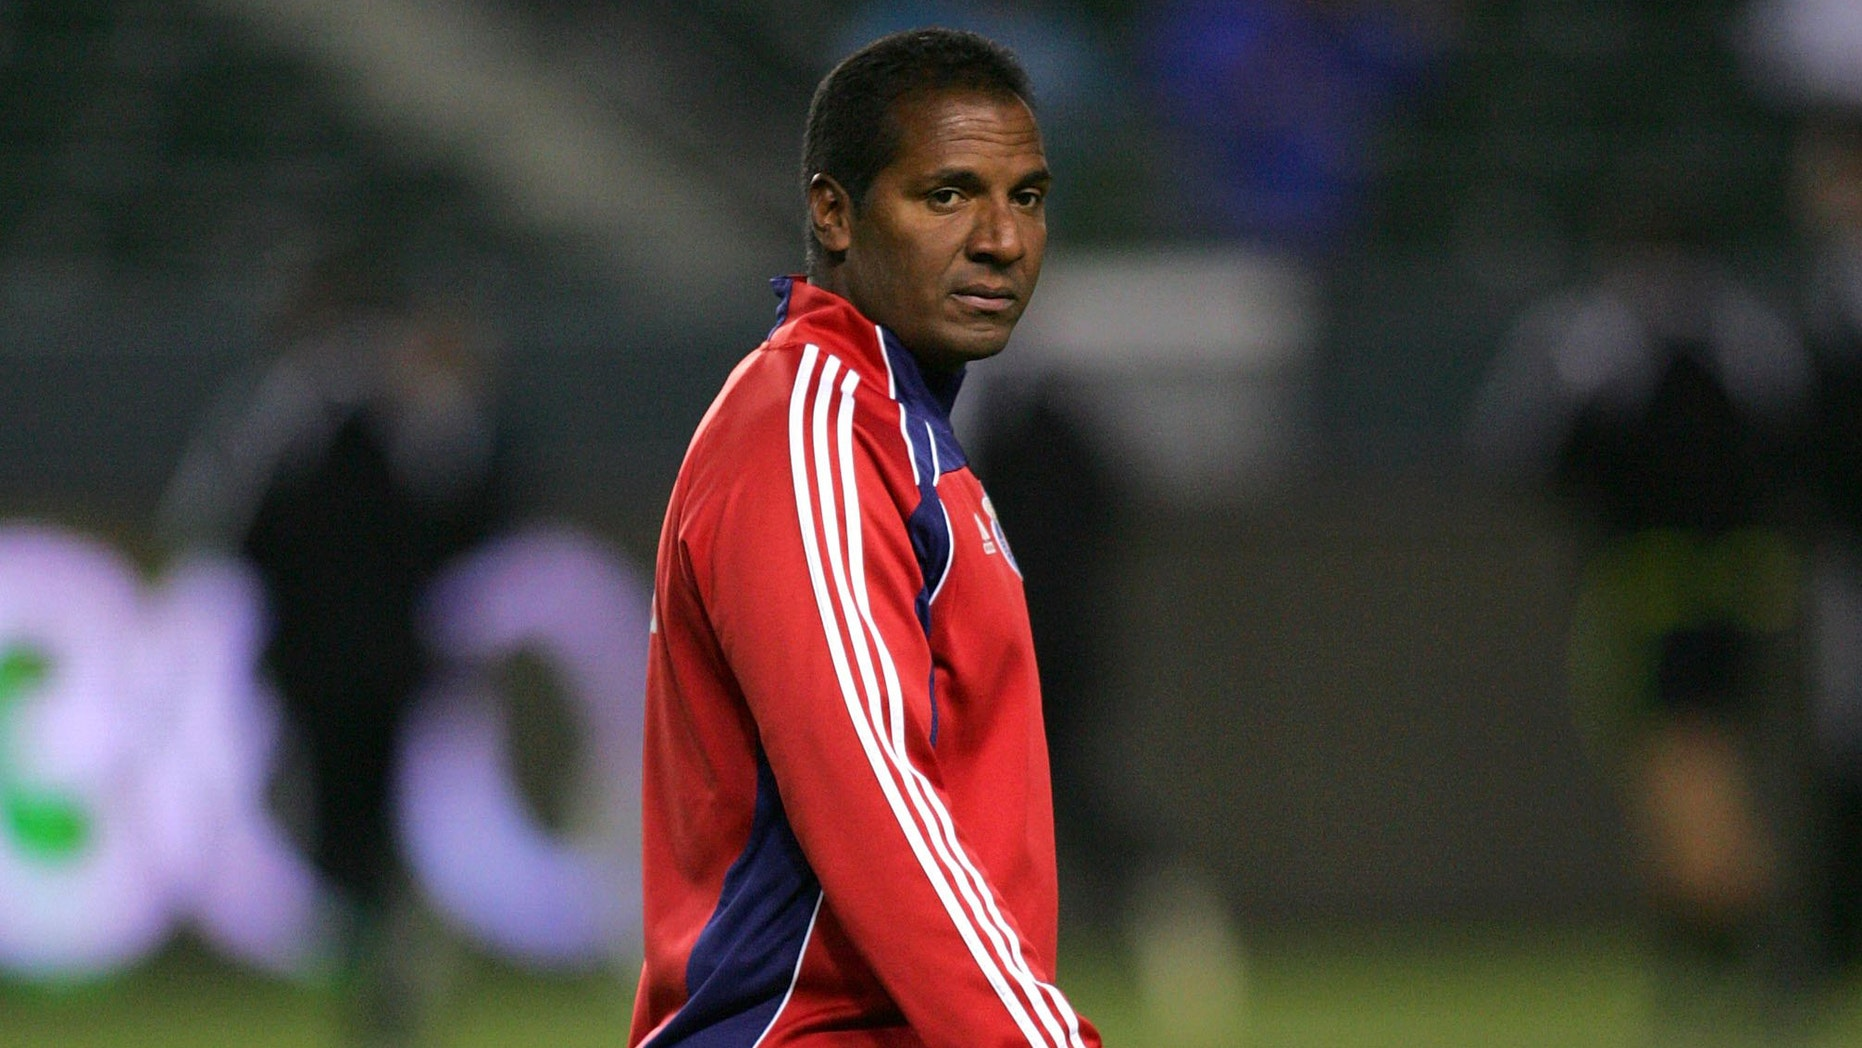 Assistant Coach Carlos Llamosa of Chivas USA looks on during warm-up prior to their MLS match against the Los Angeles Galaxy on April 1, 2010 in Carson, California.